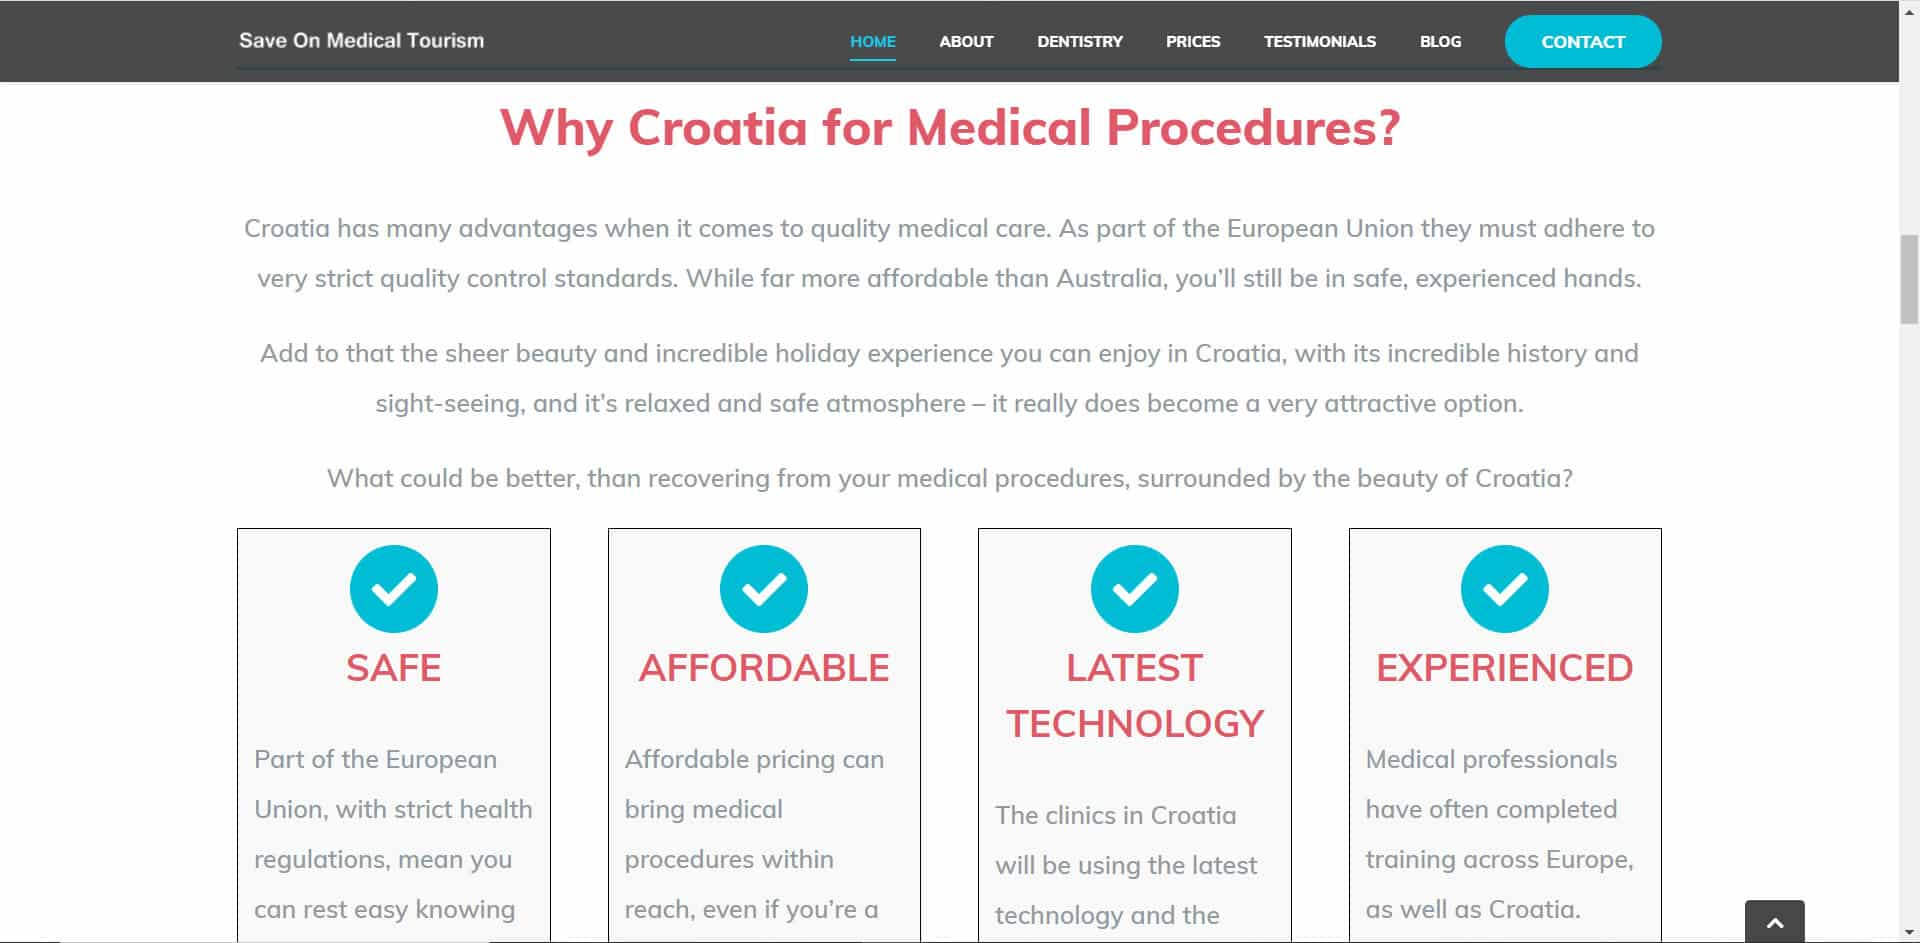 Save on Medical Tourism - Home Page Sample 1